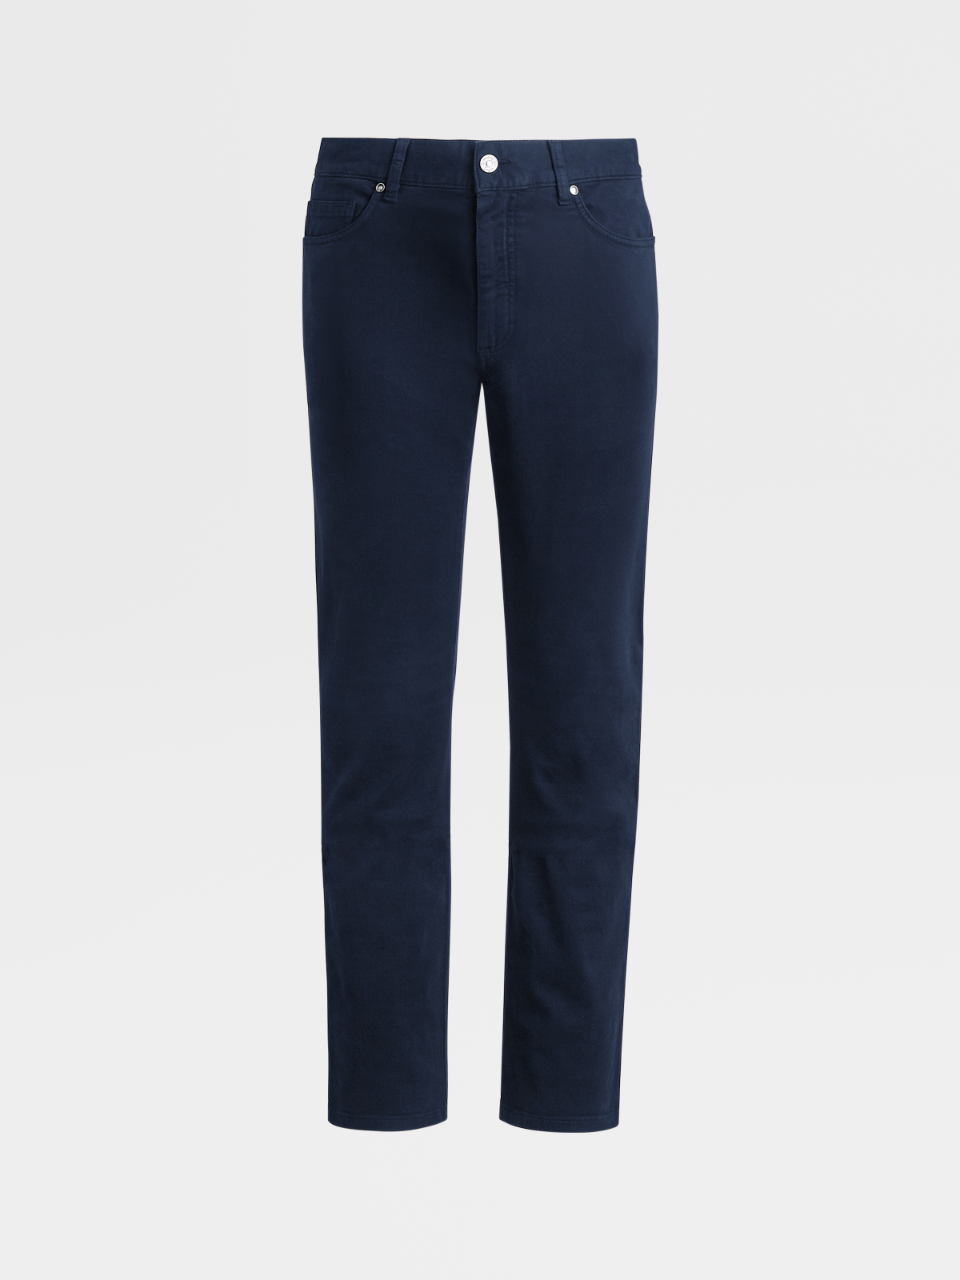 Stretch Cotton Denim 5 Pockets Trousers